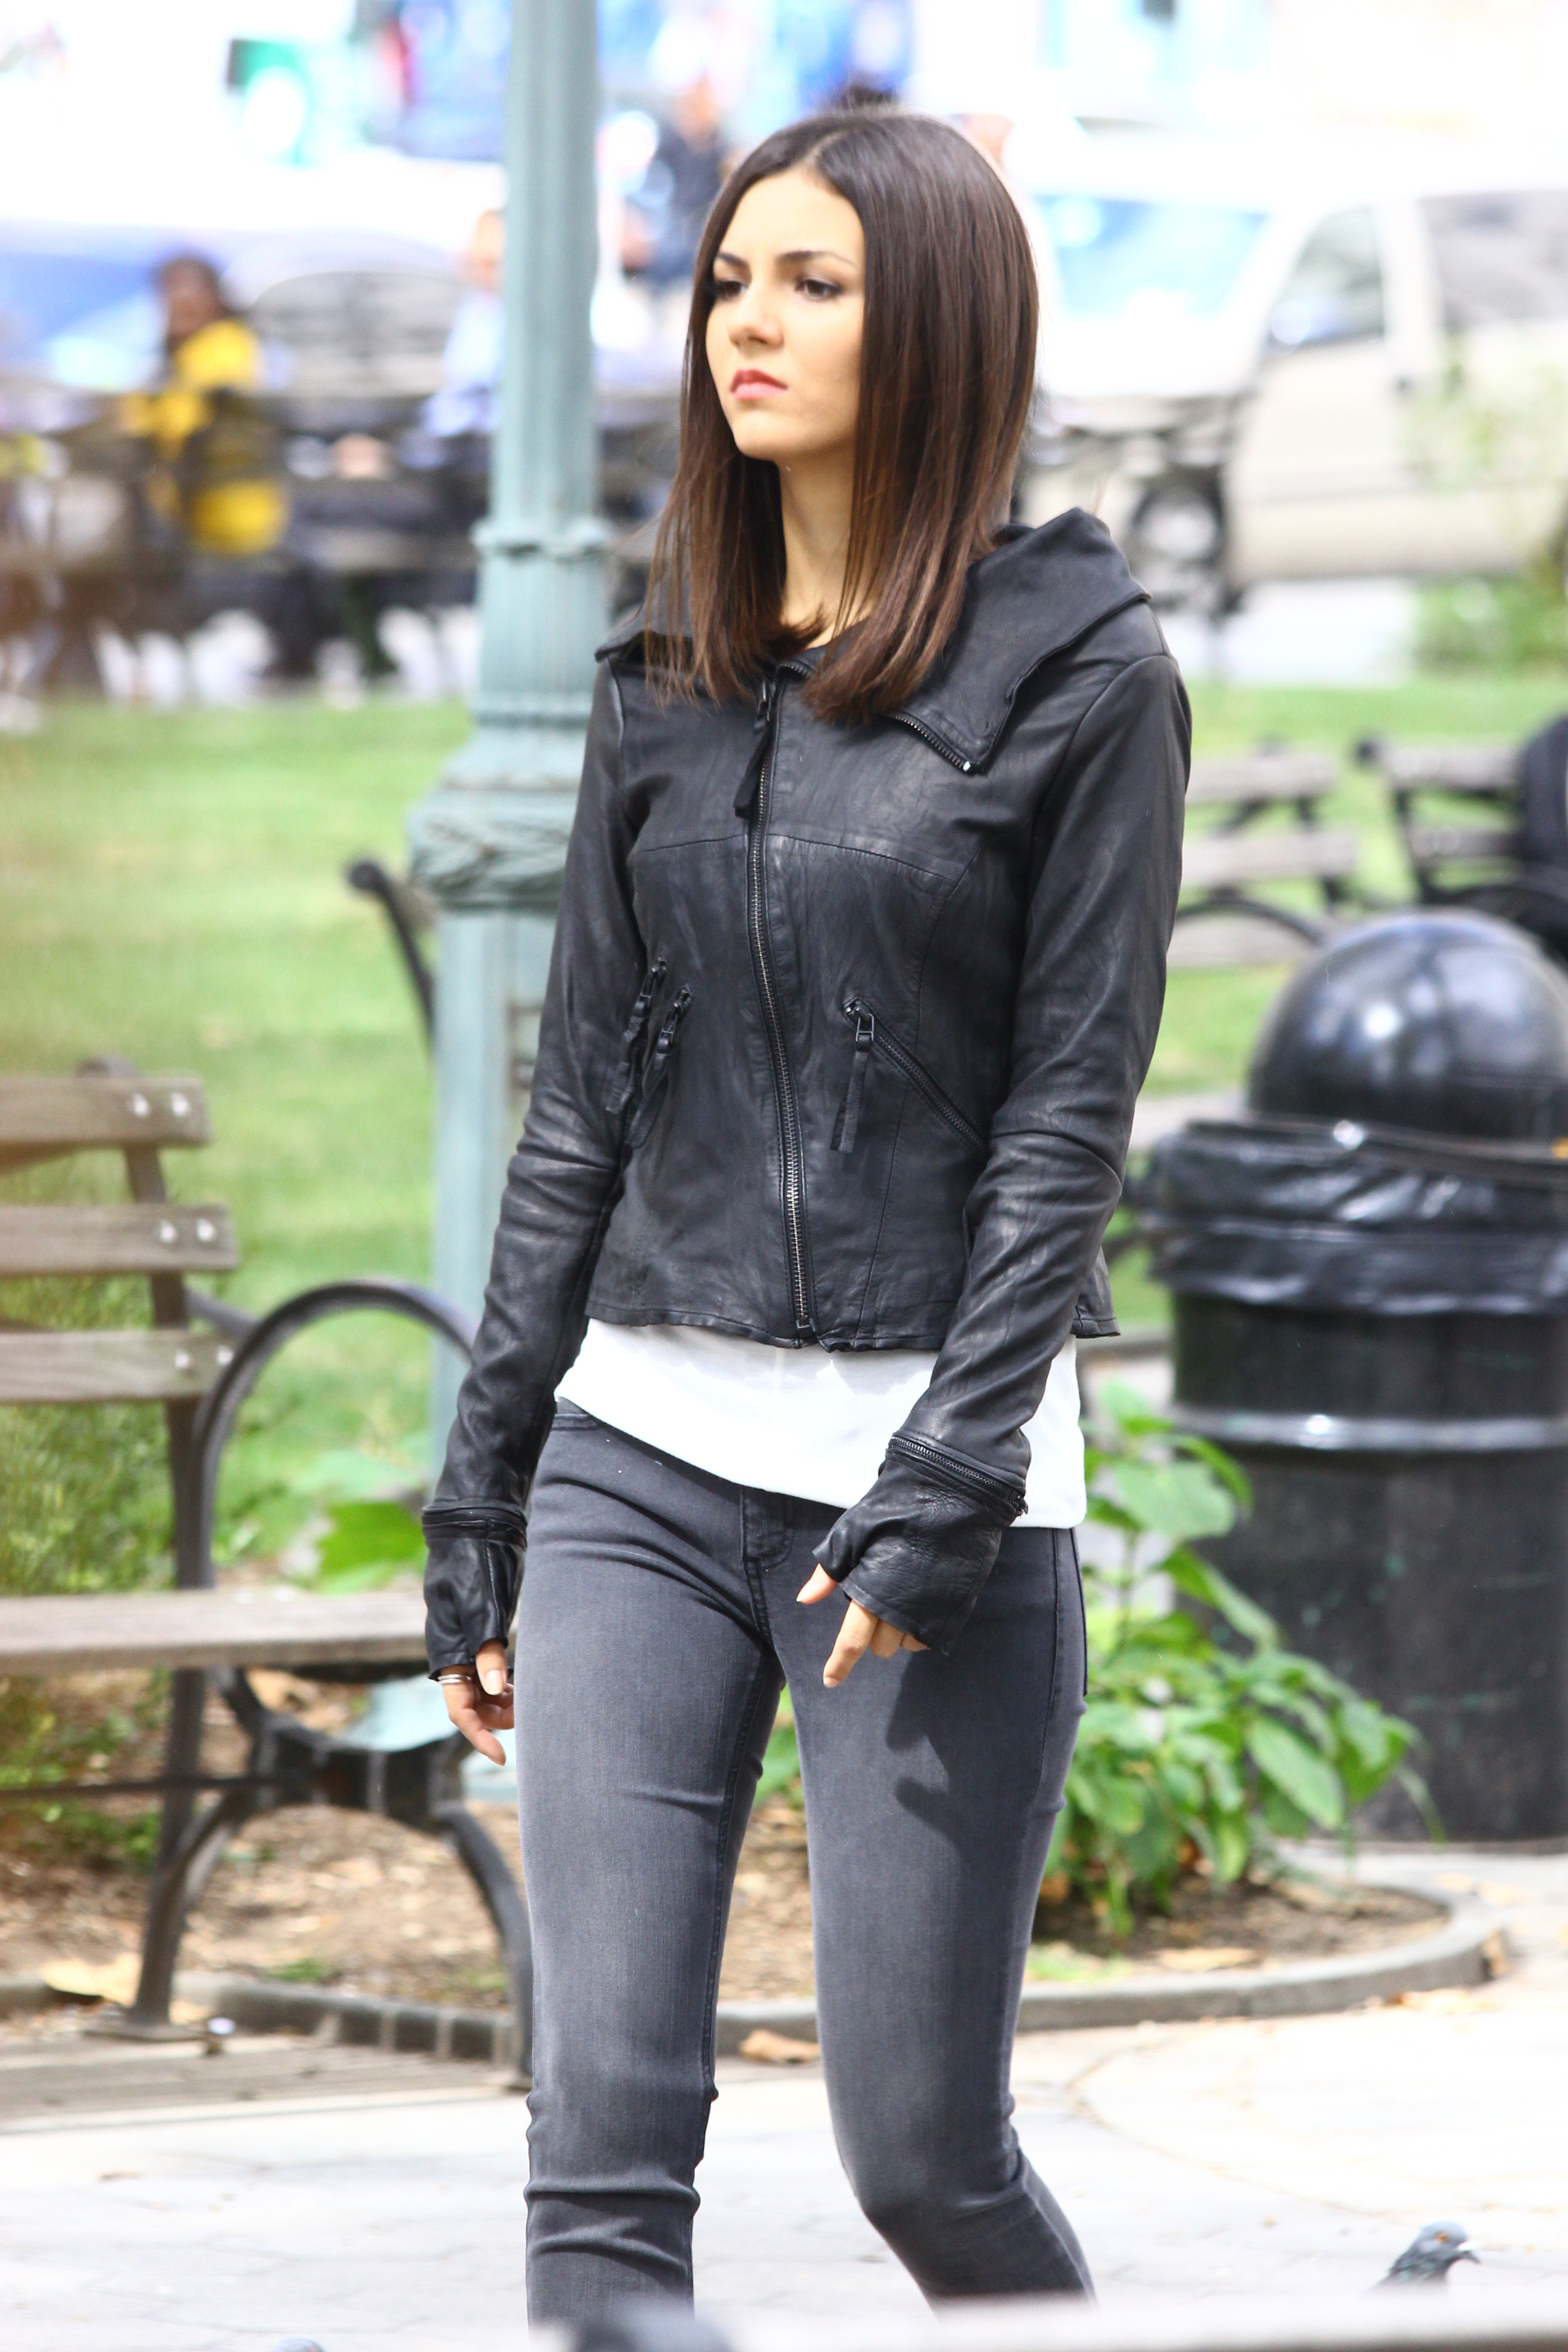 Eye Candy Nails Training: See New Photos Of Victoria Justice On The Set Of 'Eye